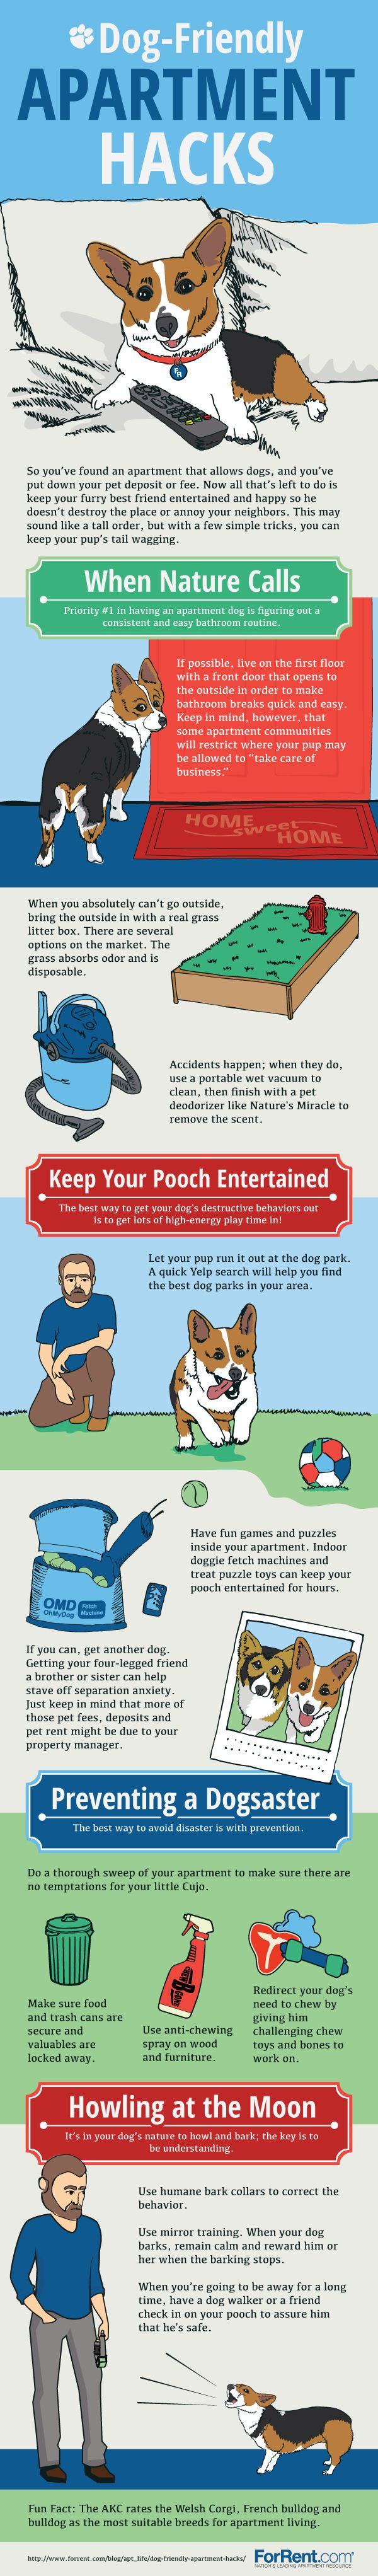 How to Create Dog Friendly Apartment? #infographic